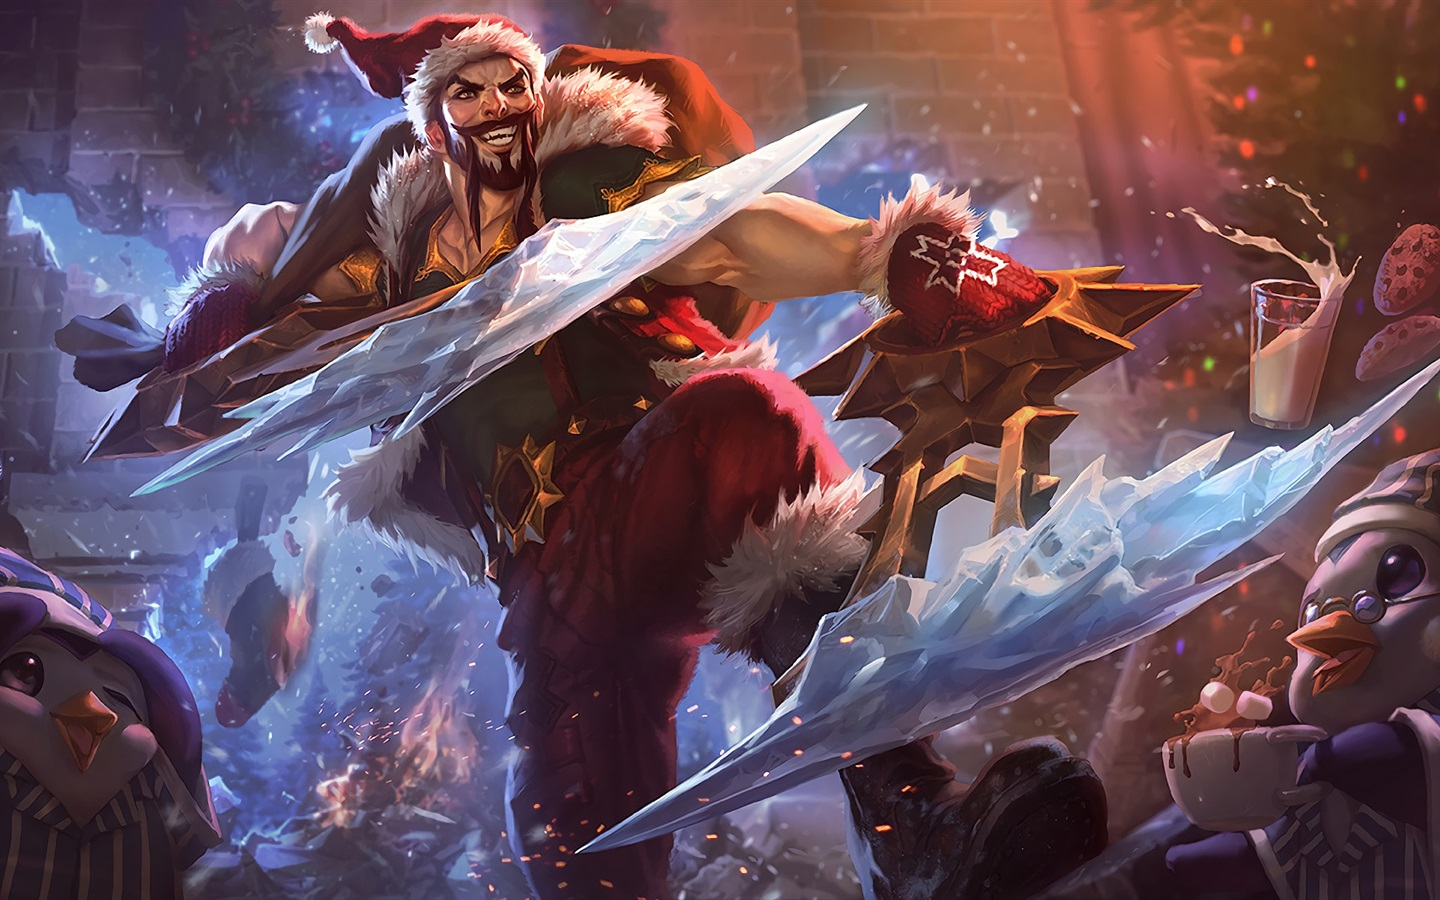 Wallpaper League Of Legends Santa Art Picture 1920x1080 Full Hd